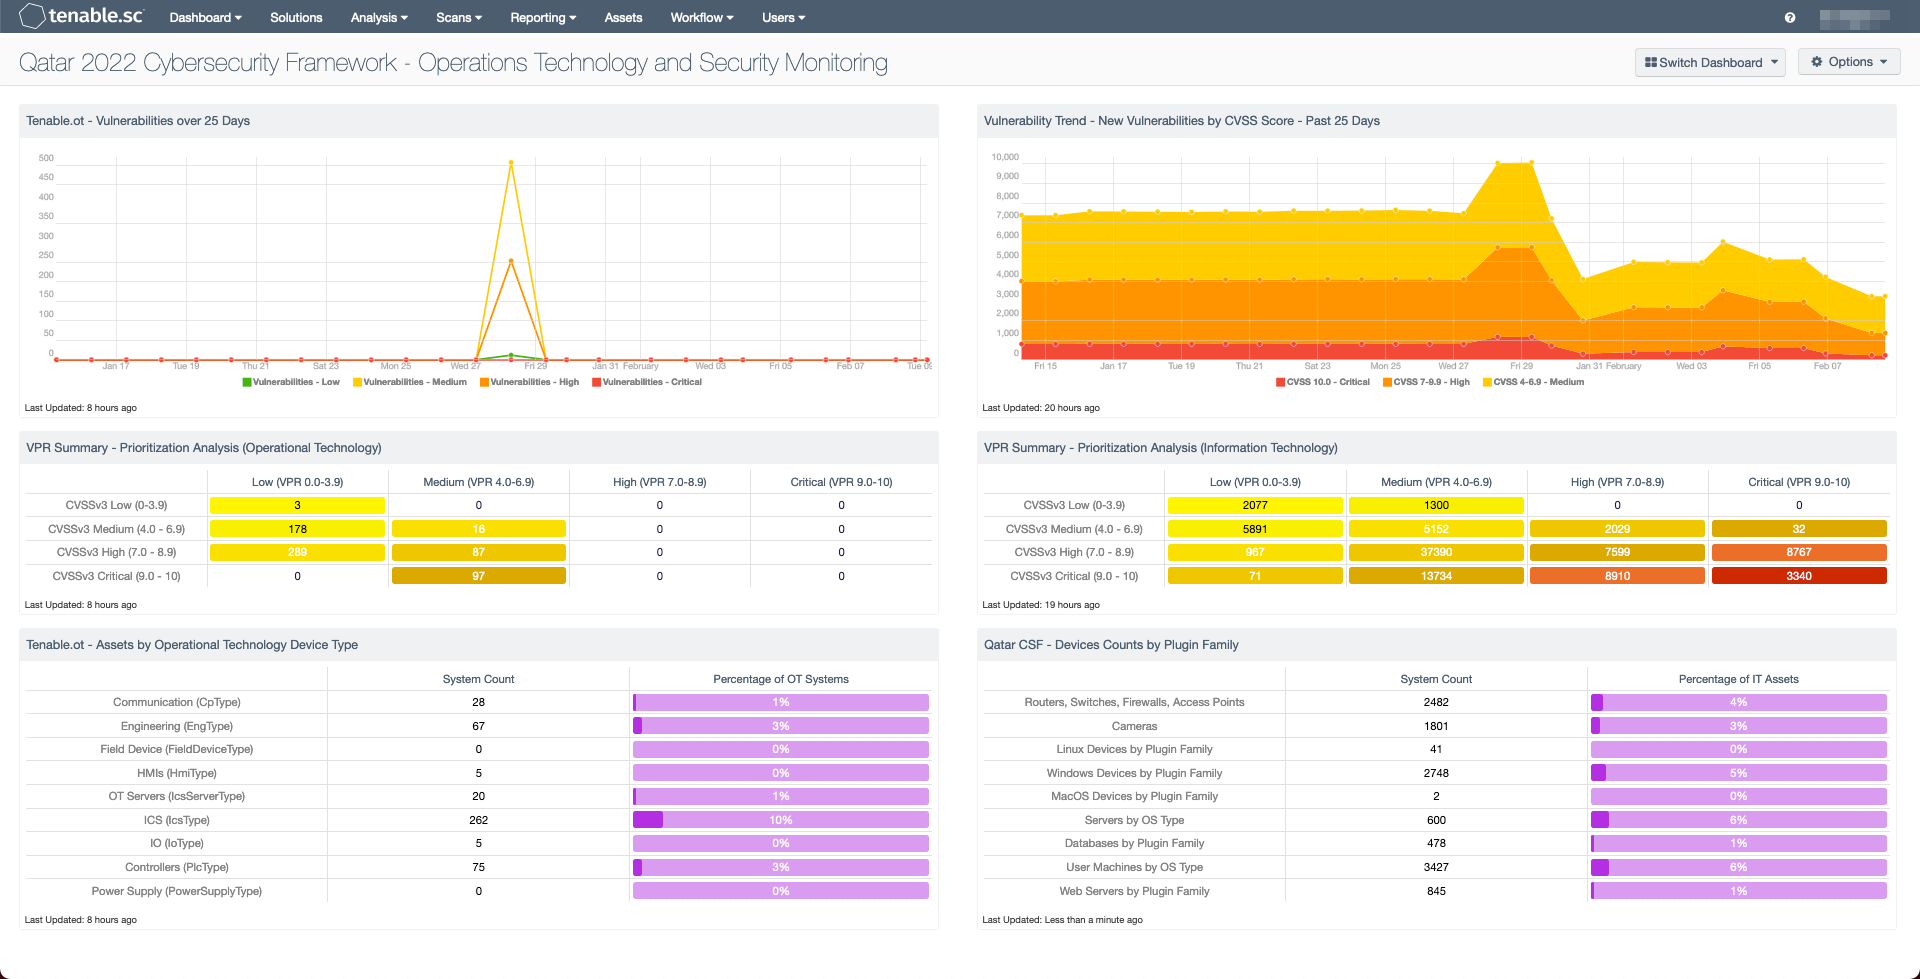 Qatar 2022 Cybersecurity Operations Technology Security Monitoring Dashboard